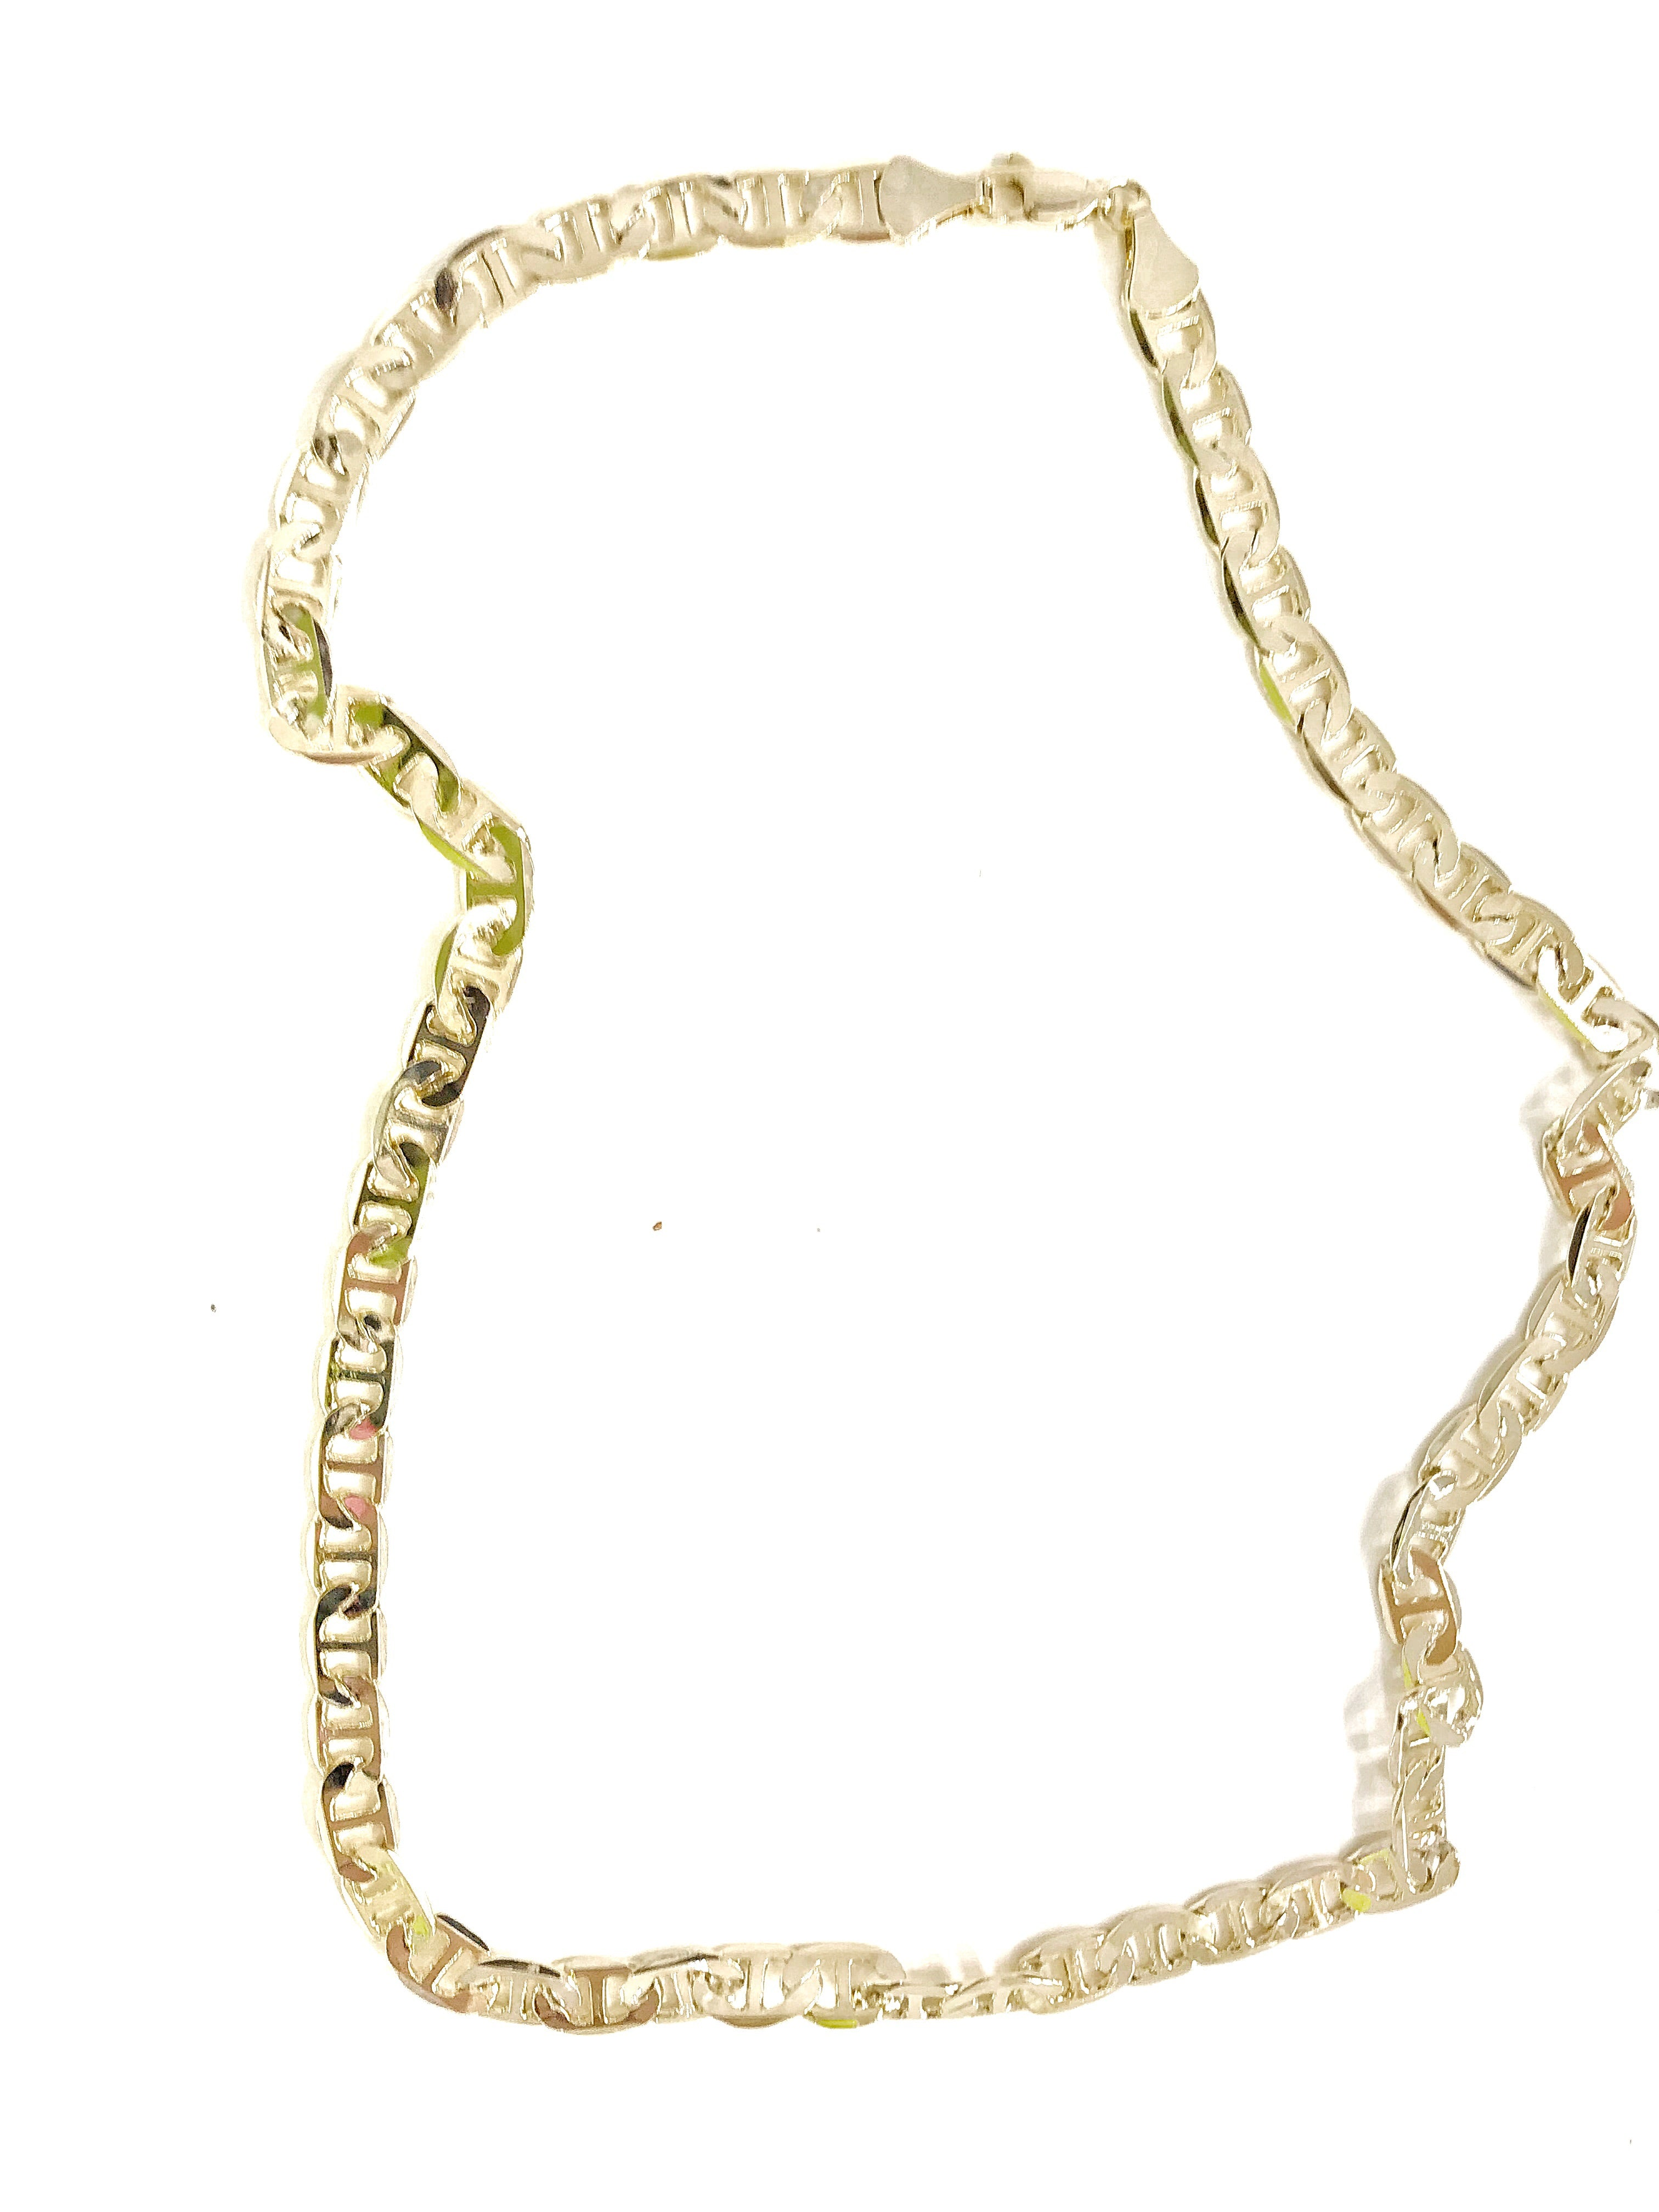 GUCCI LINK GOLD CHAIN